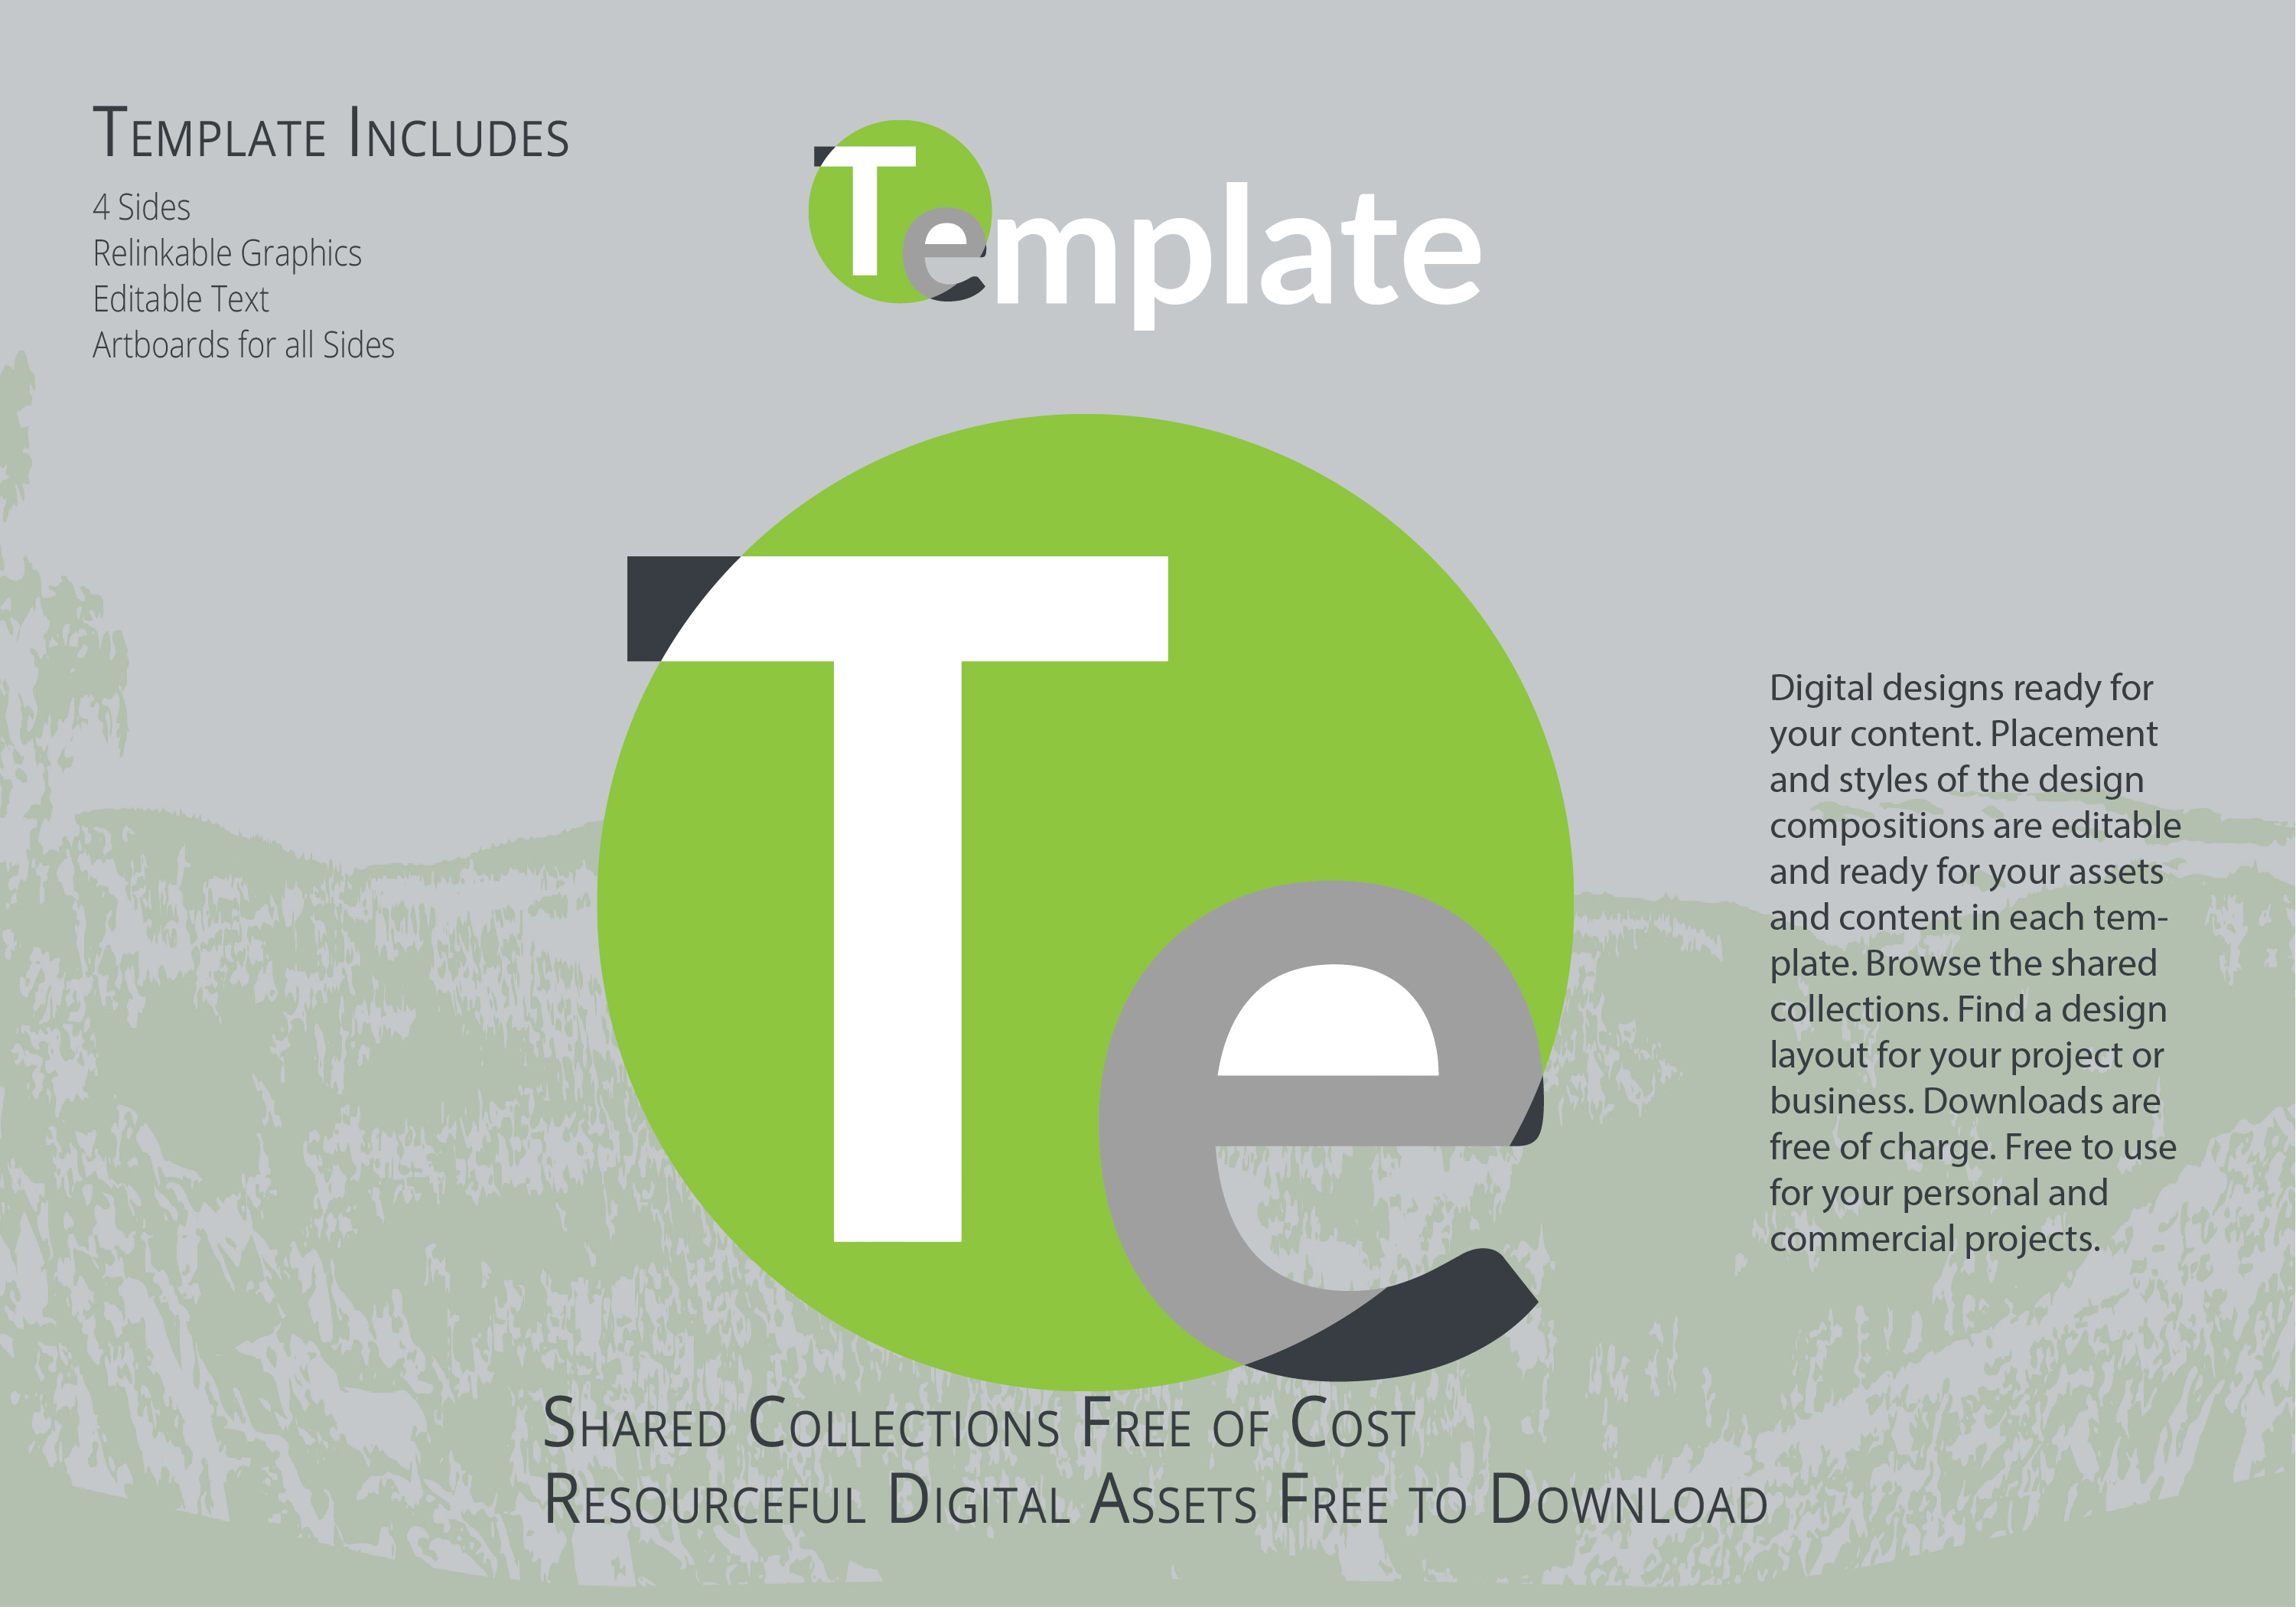 Download Free Template - Package 10in Design - Illustrator Package Design Template Download